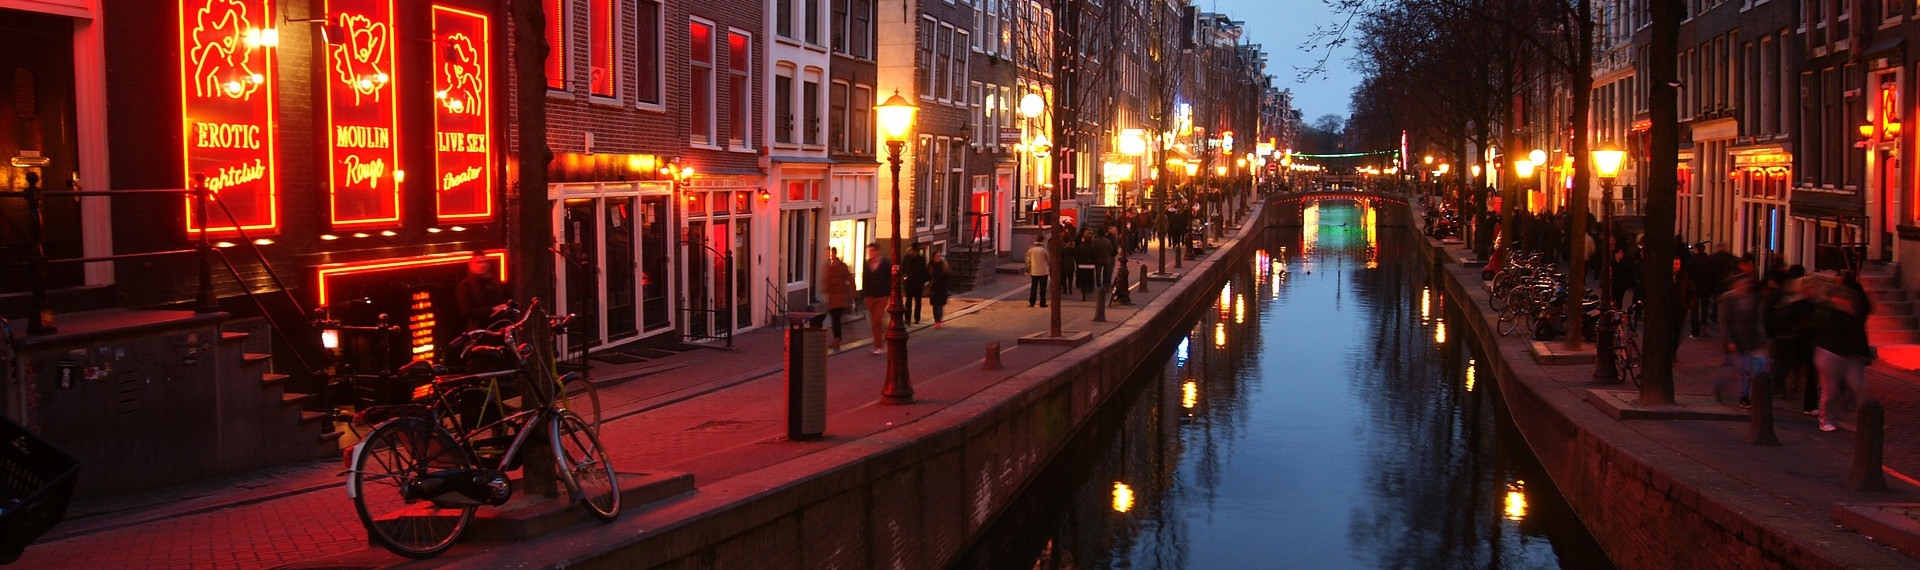 Red Light District Pub Crawl Amsterdam | Pissup